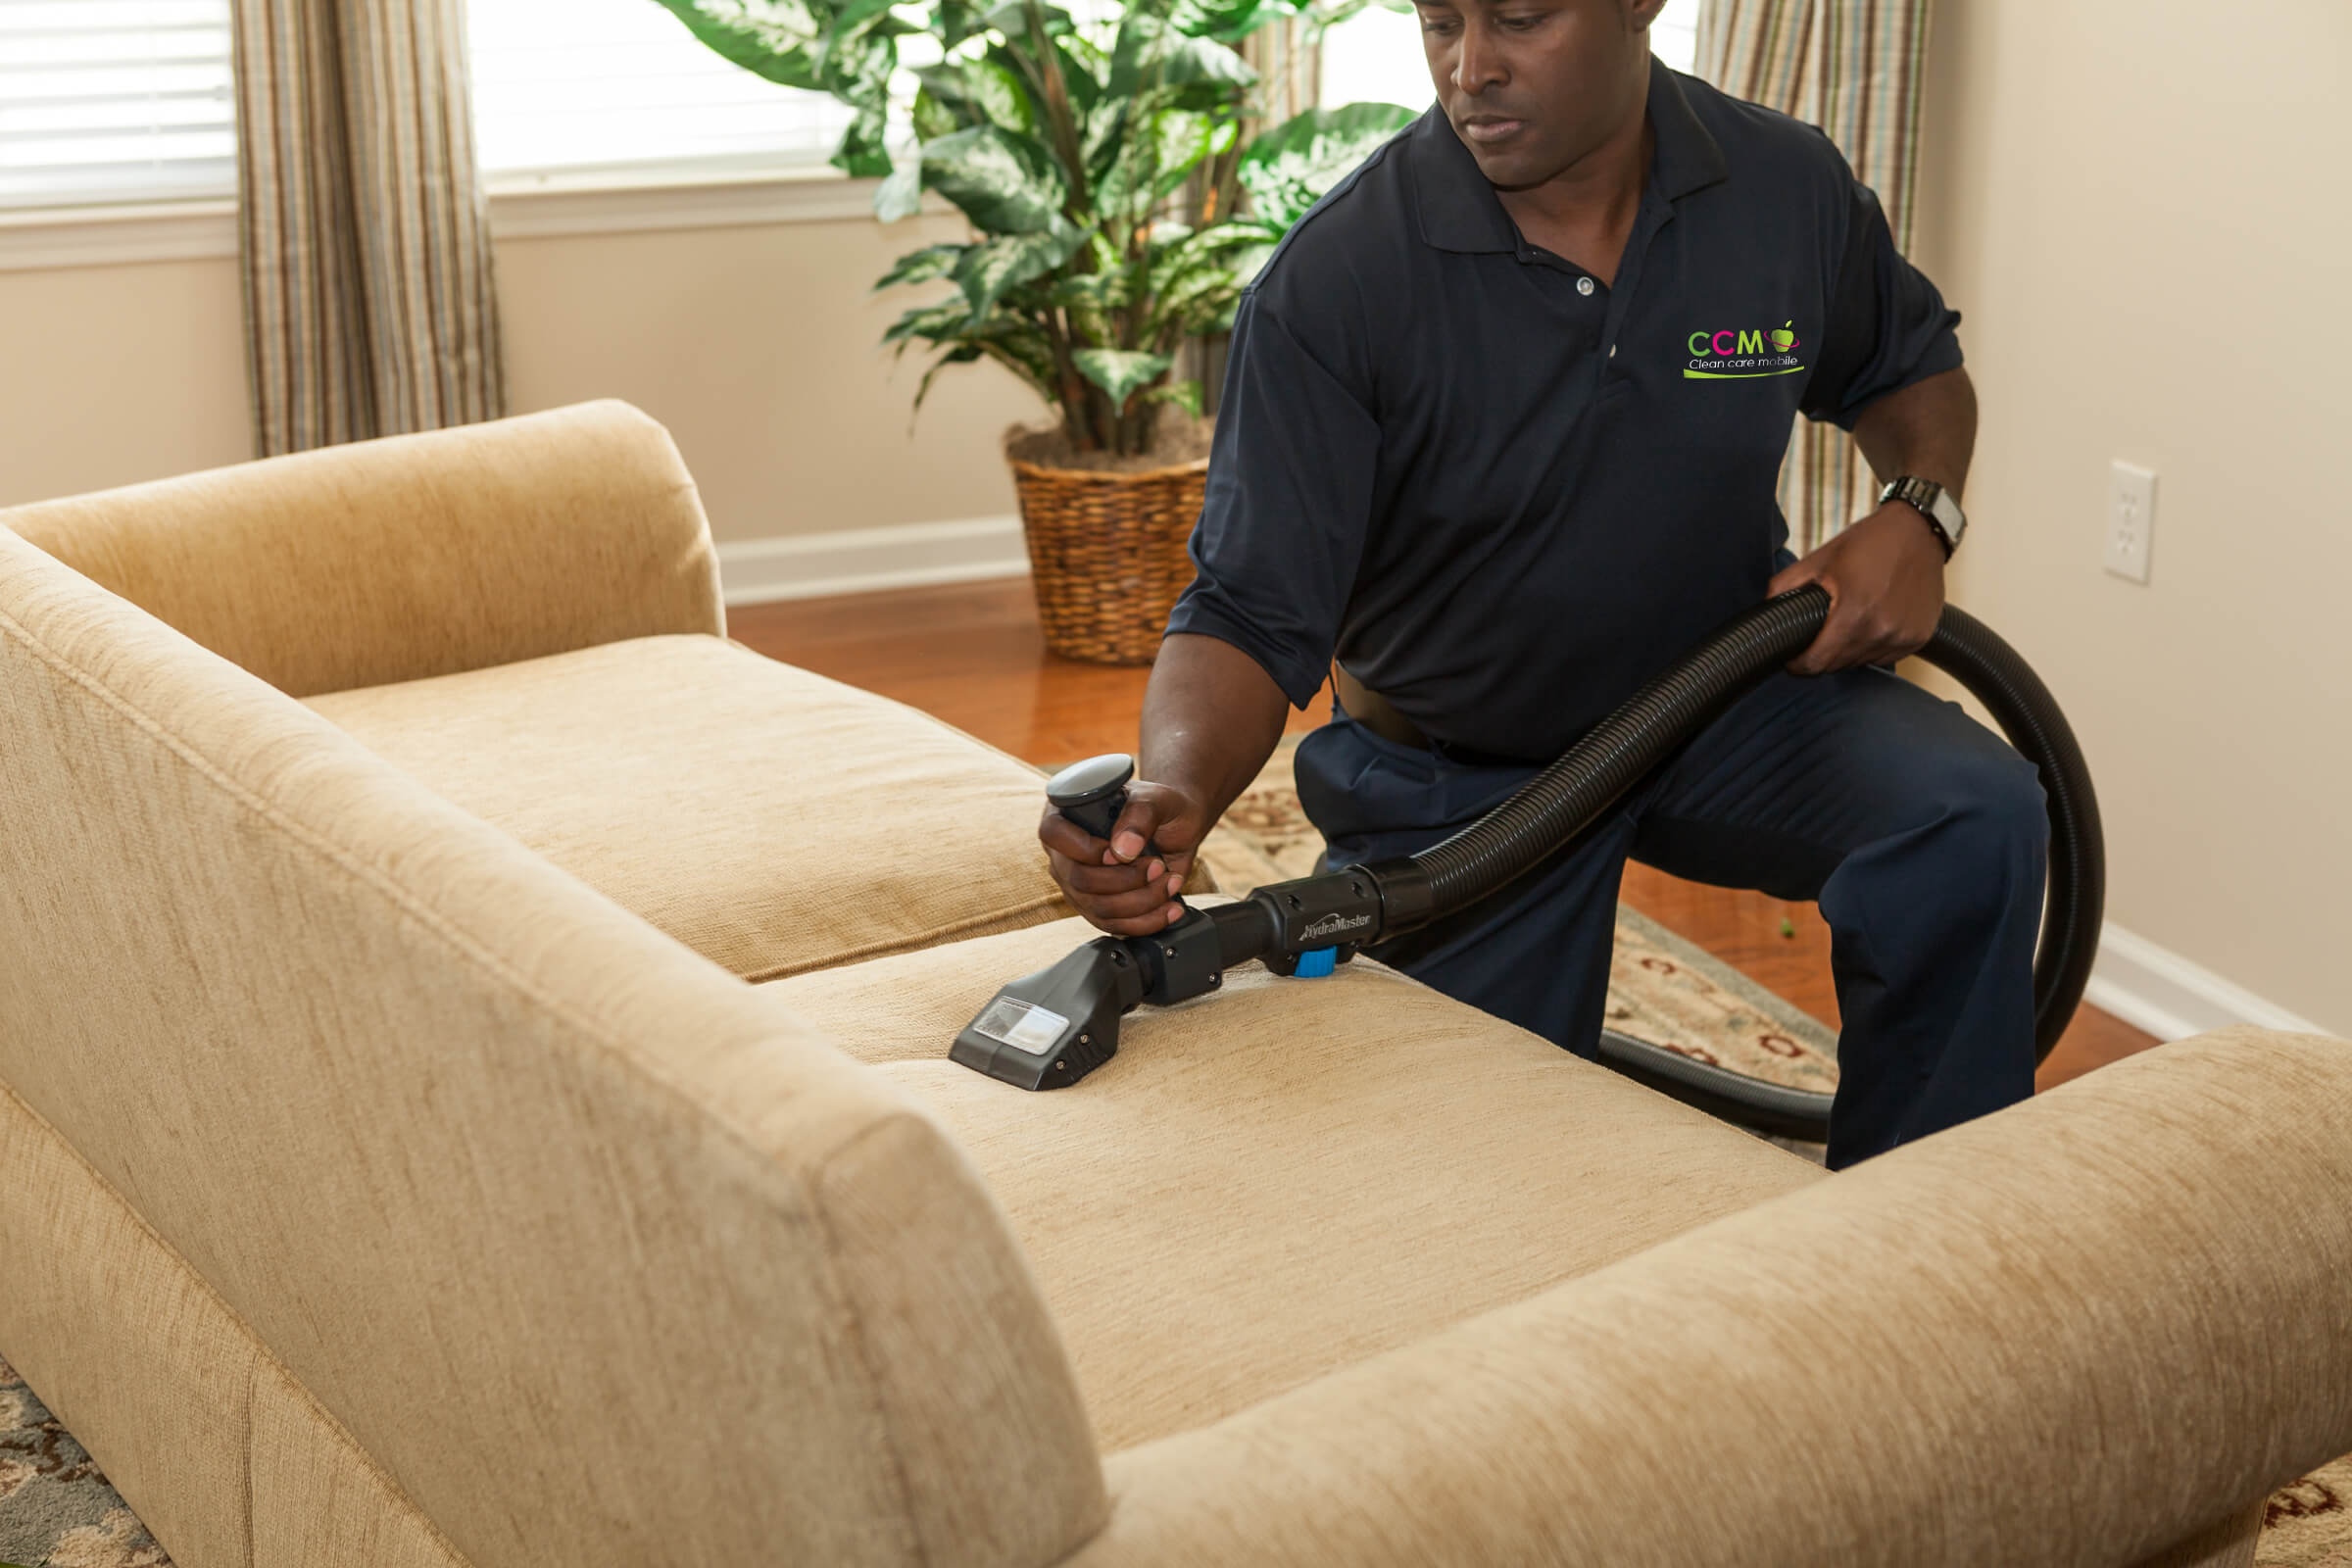 sofa cleaner chair sleeper upholstery cleaning service clean care mobile